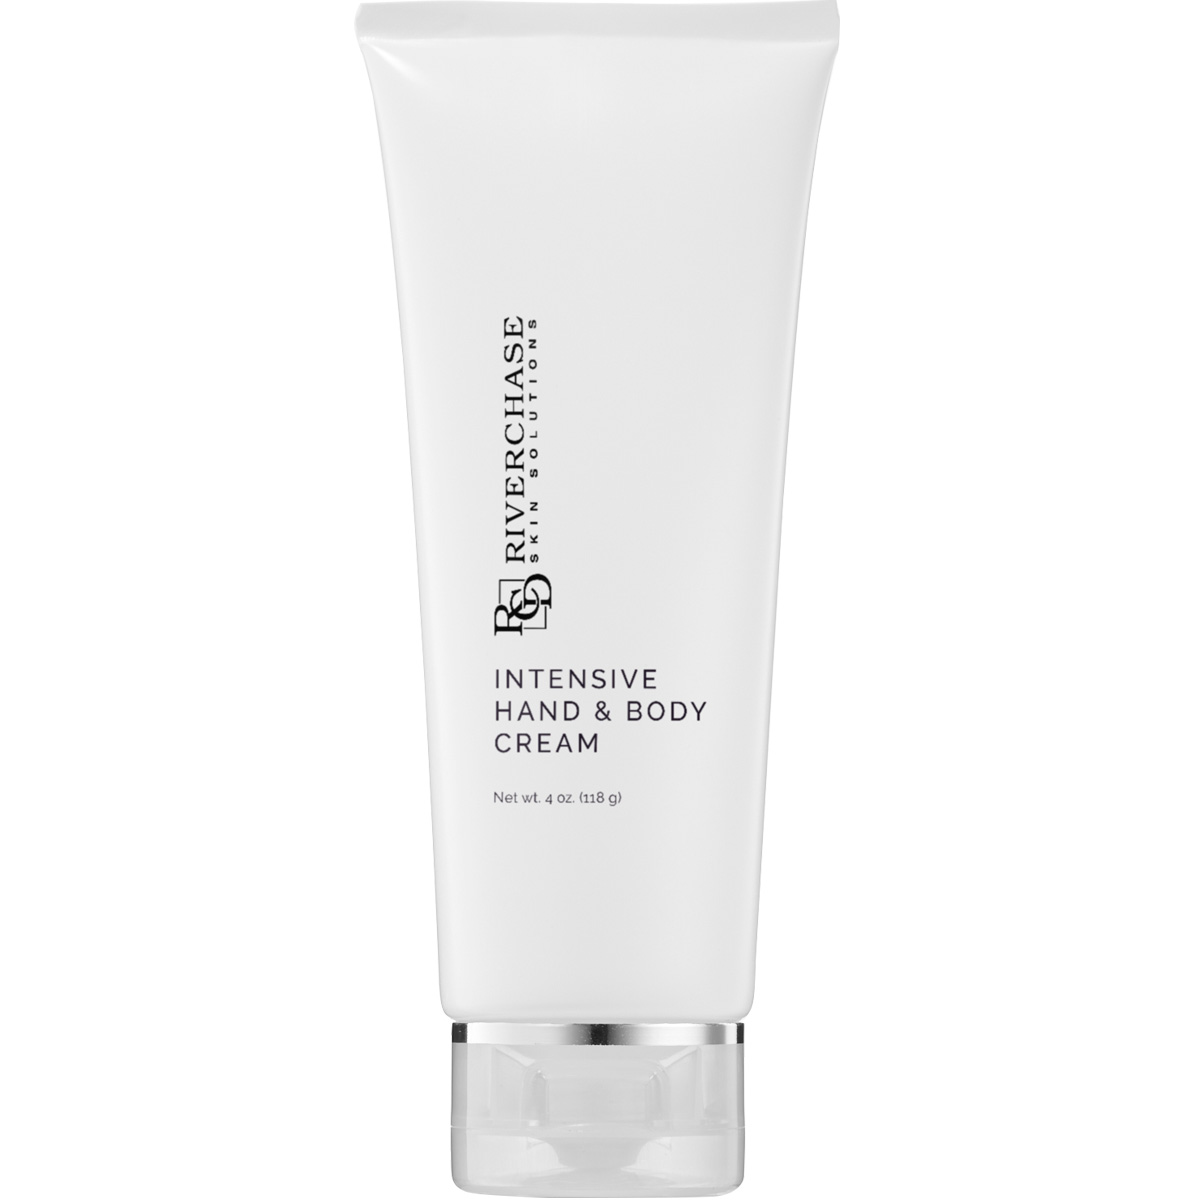 Intensive Hand & Body Cream